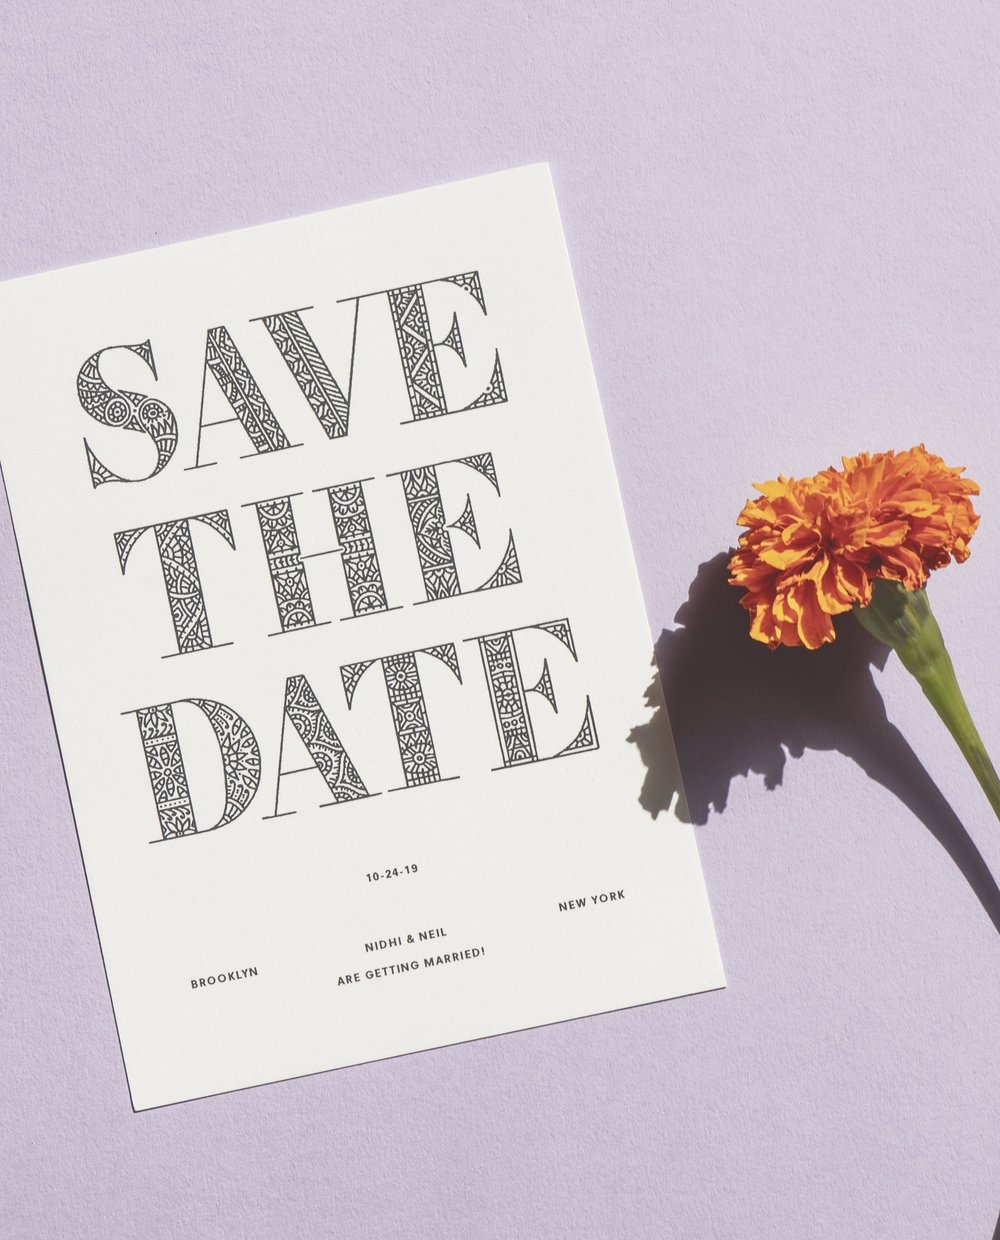 Other: Save the Dates, Thank You Cards, Personalized Stationery, Bridesmaids Gifting Stationery